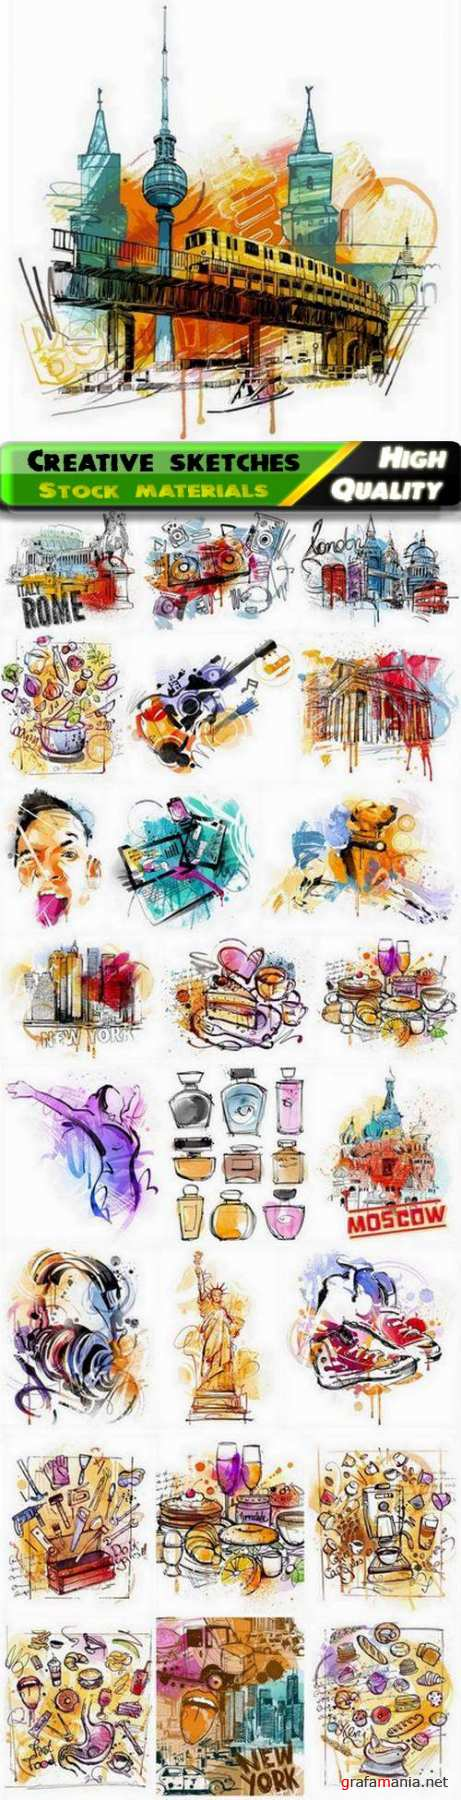 Abstract creative sketch for t-shirt or clothes design - 25 Eps